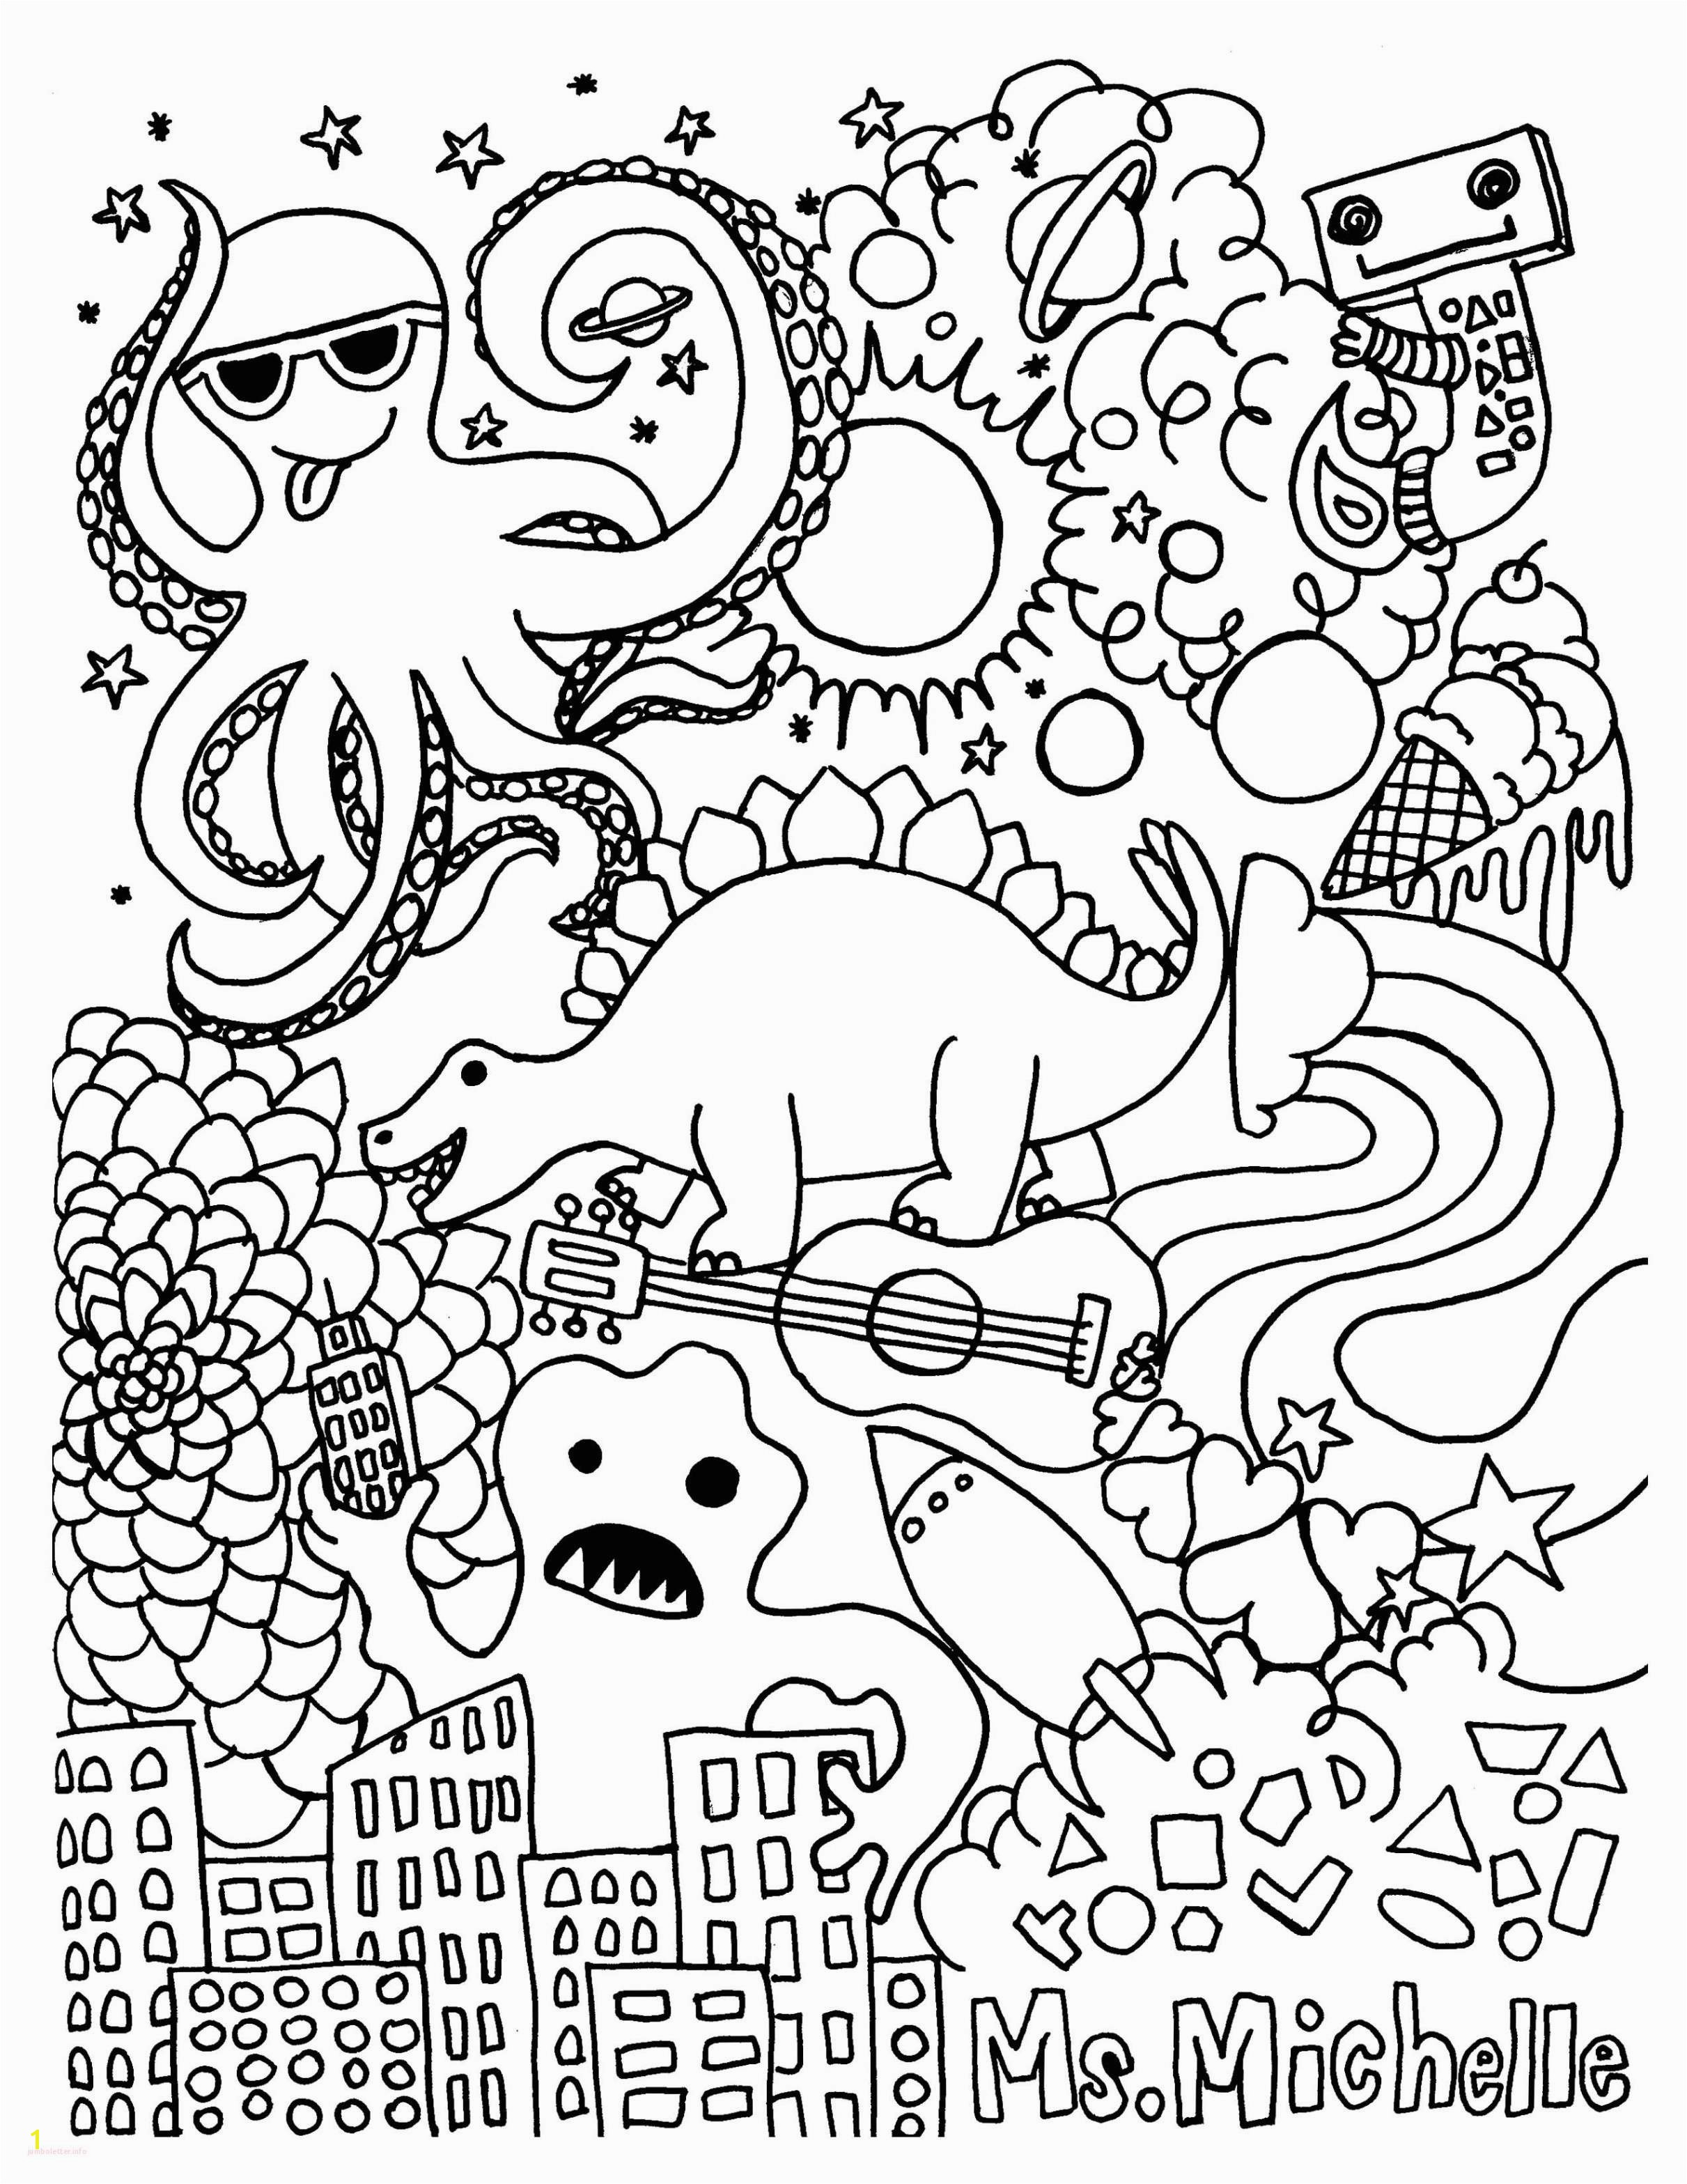 Coloring Pages for Boys to Print